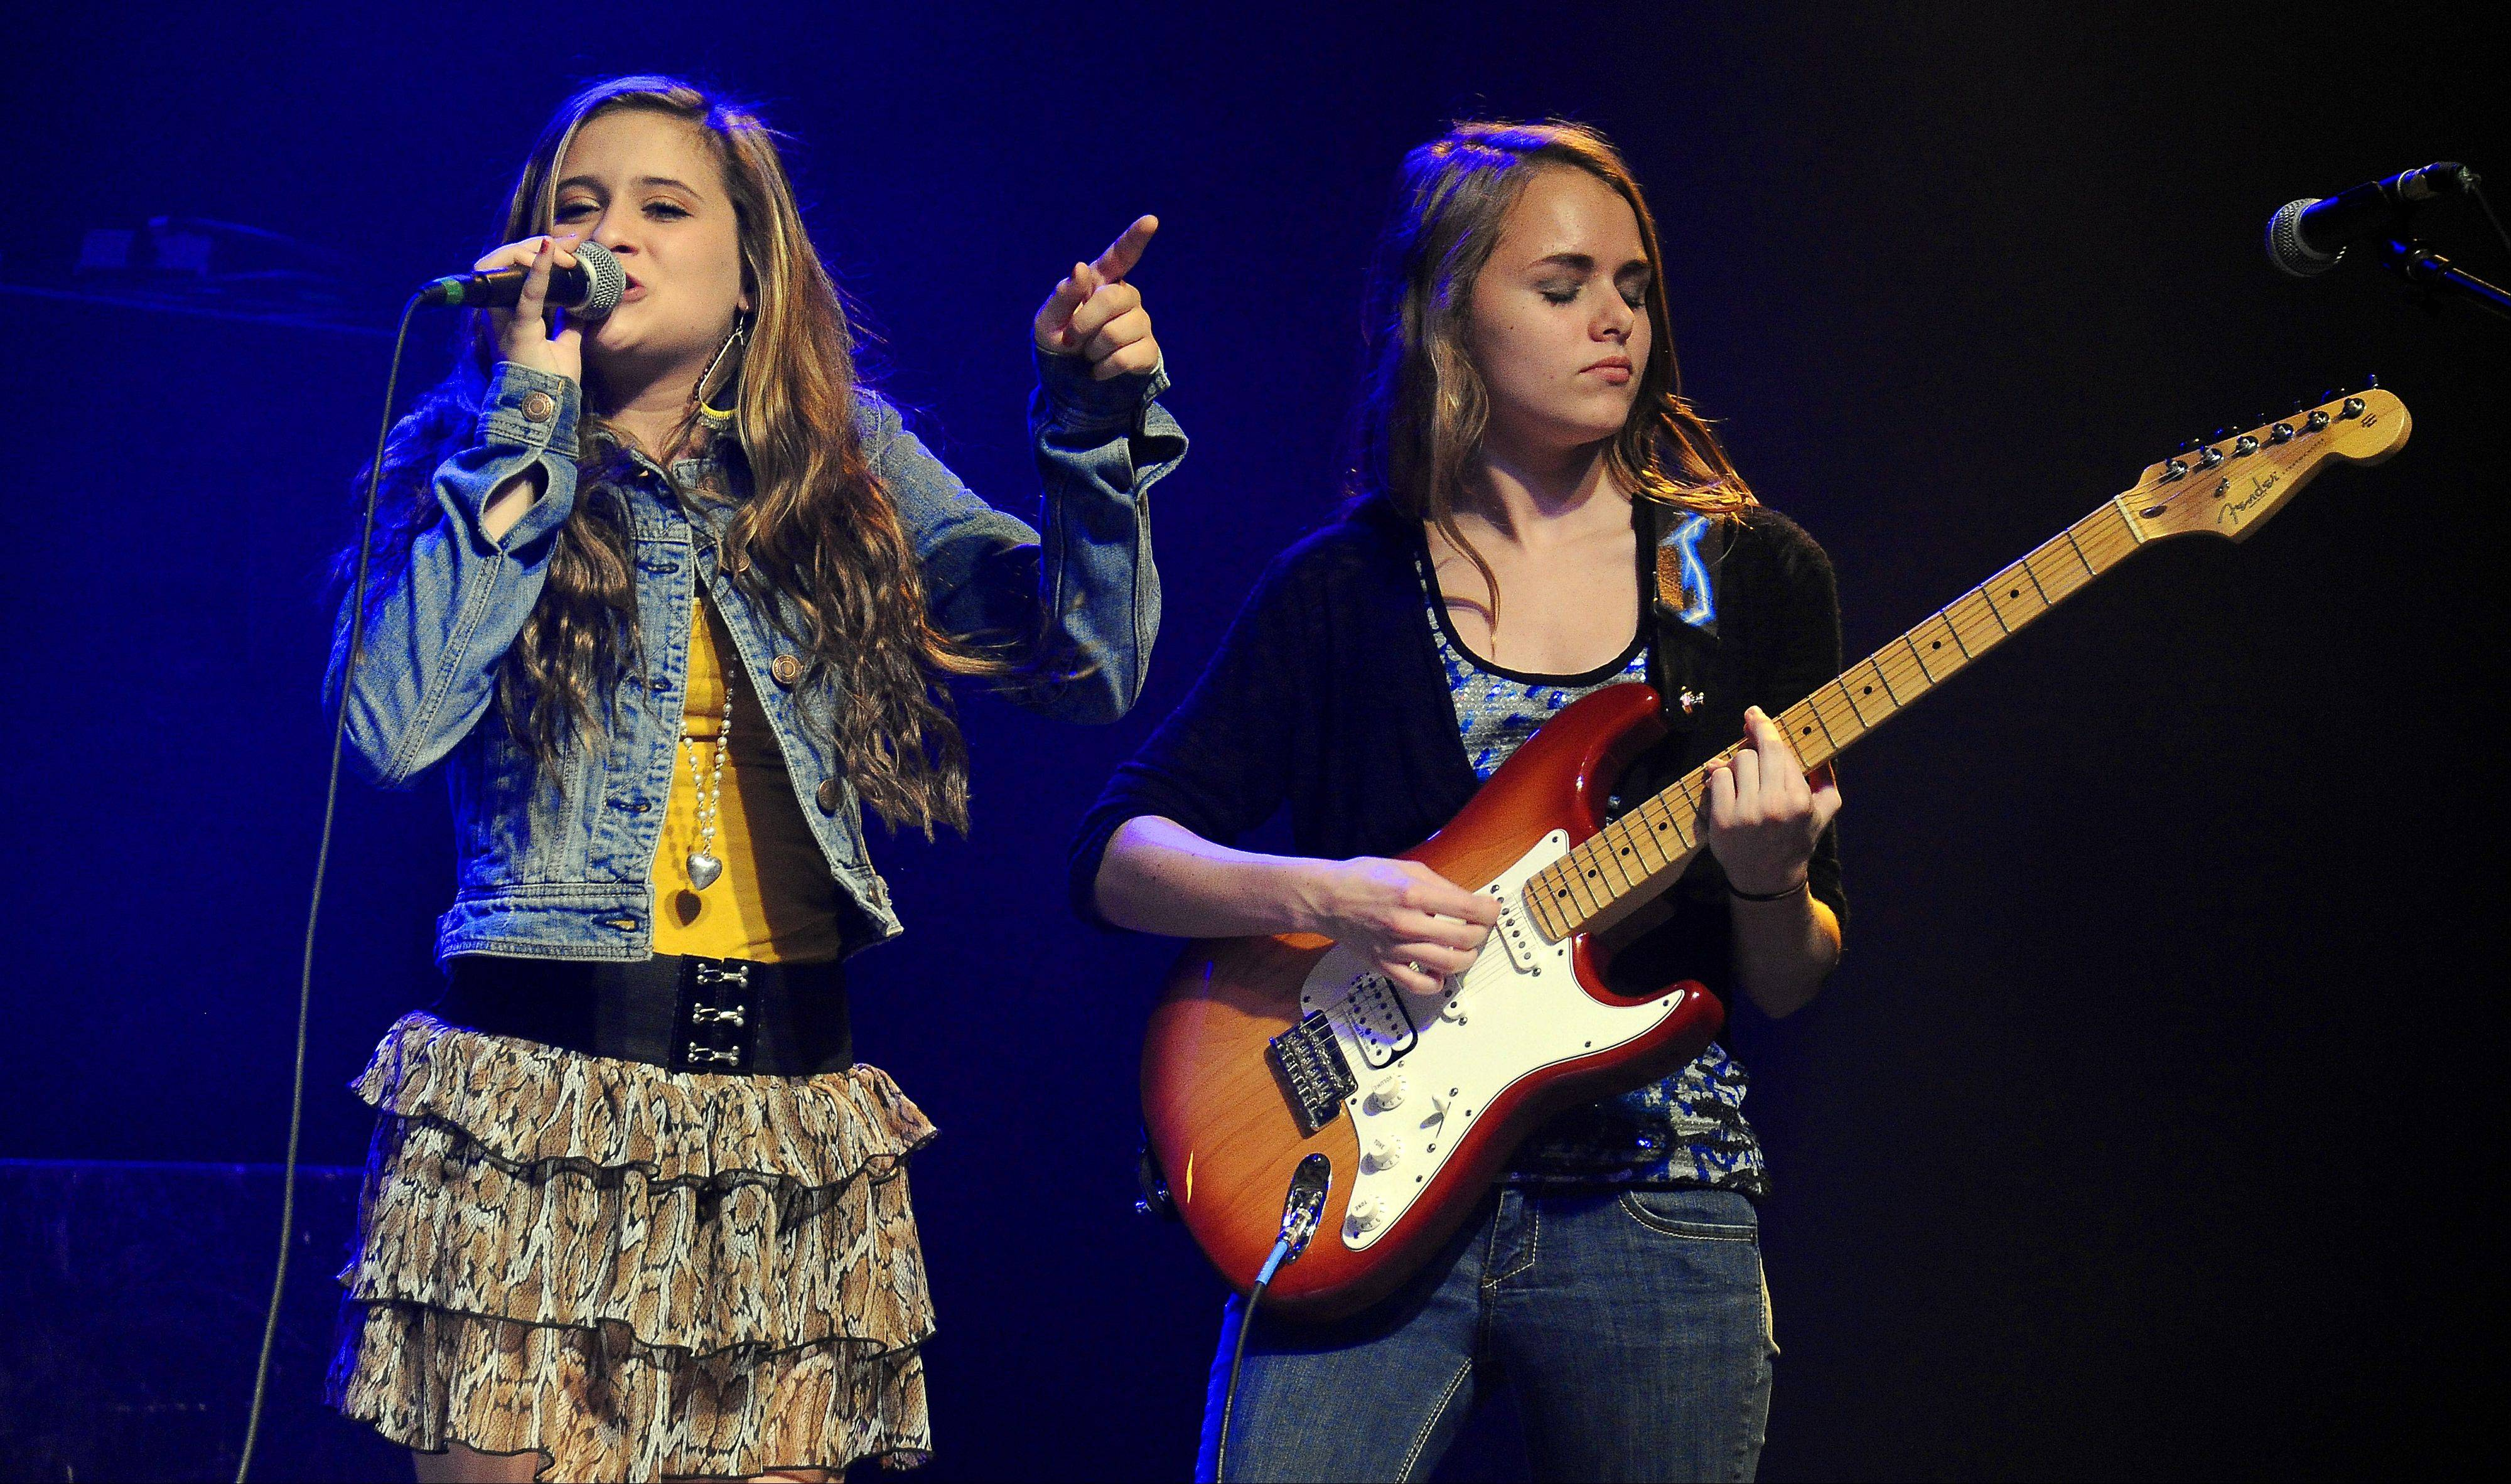 Serendipity band members Josie Treffy, 15, of South Elgin, and Anneliese Schulz, 15, of Elk Grove Village, rock the house at Durty Nellie's in Palatine.